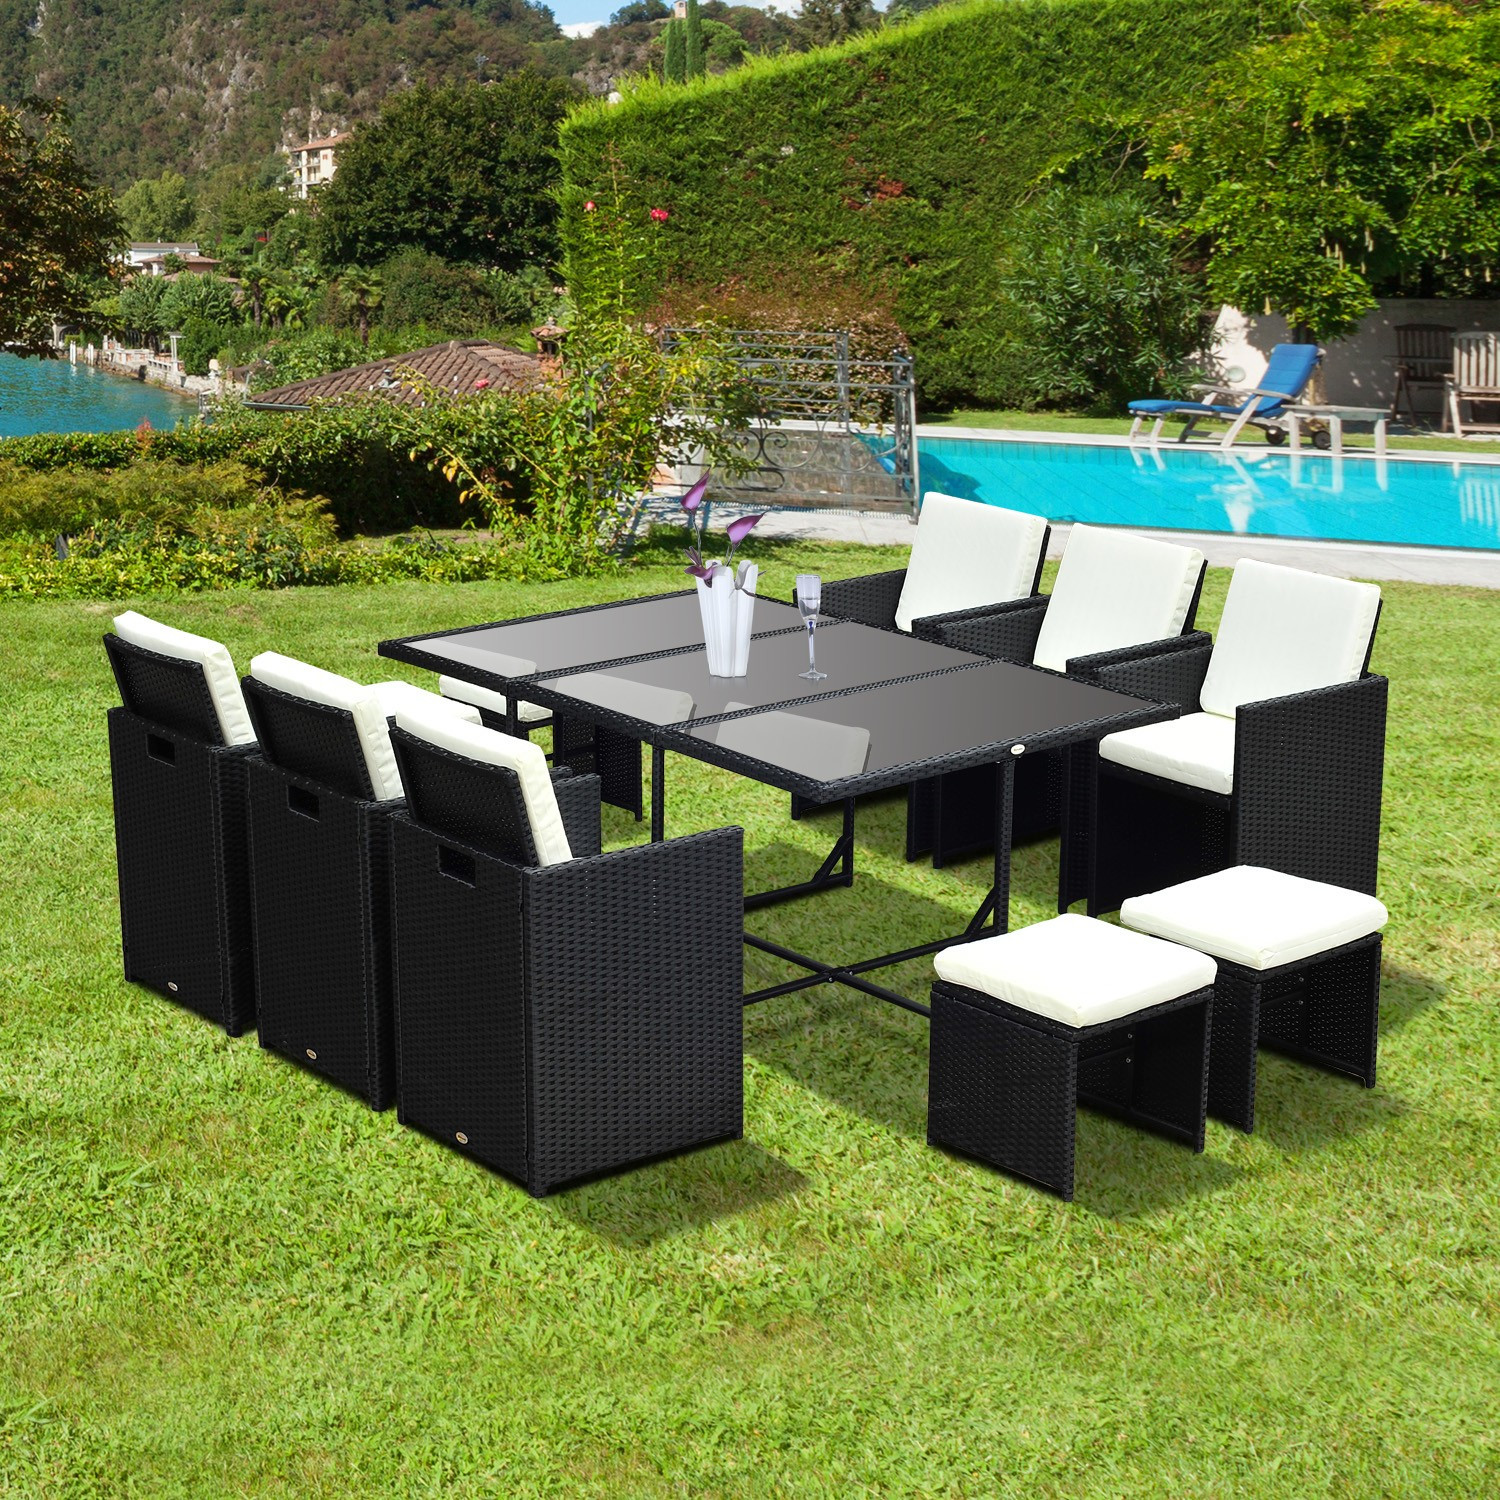 Best ideas about Outsunny Patio Furniture . Save or Pin Outsunny 11 Piece Outdoor PE Rattan Wicker Table and Chair Now.